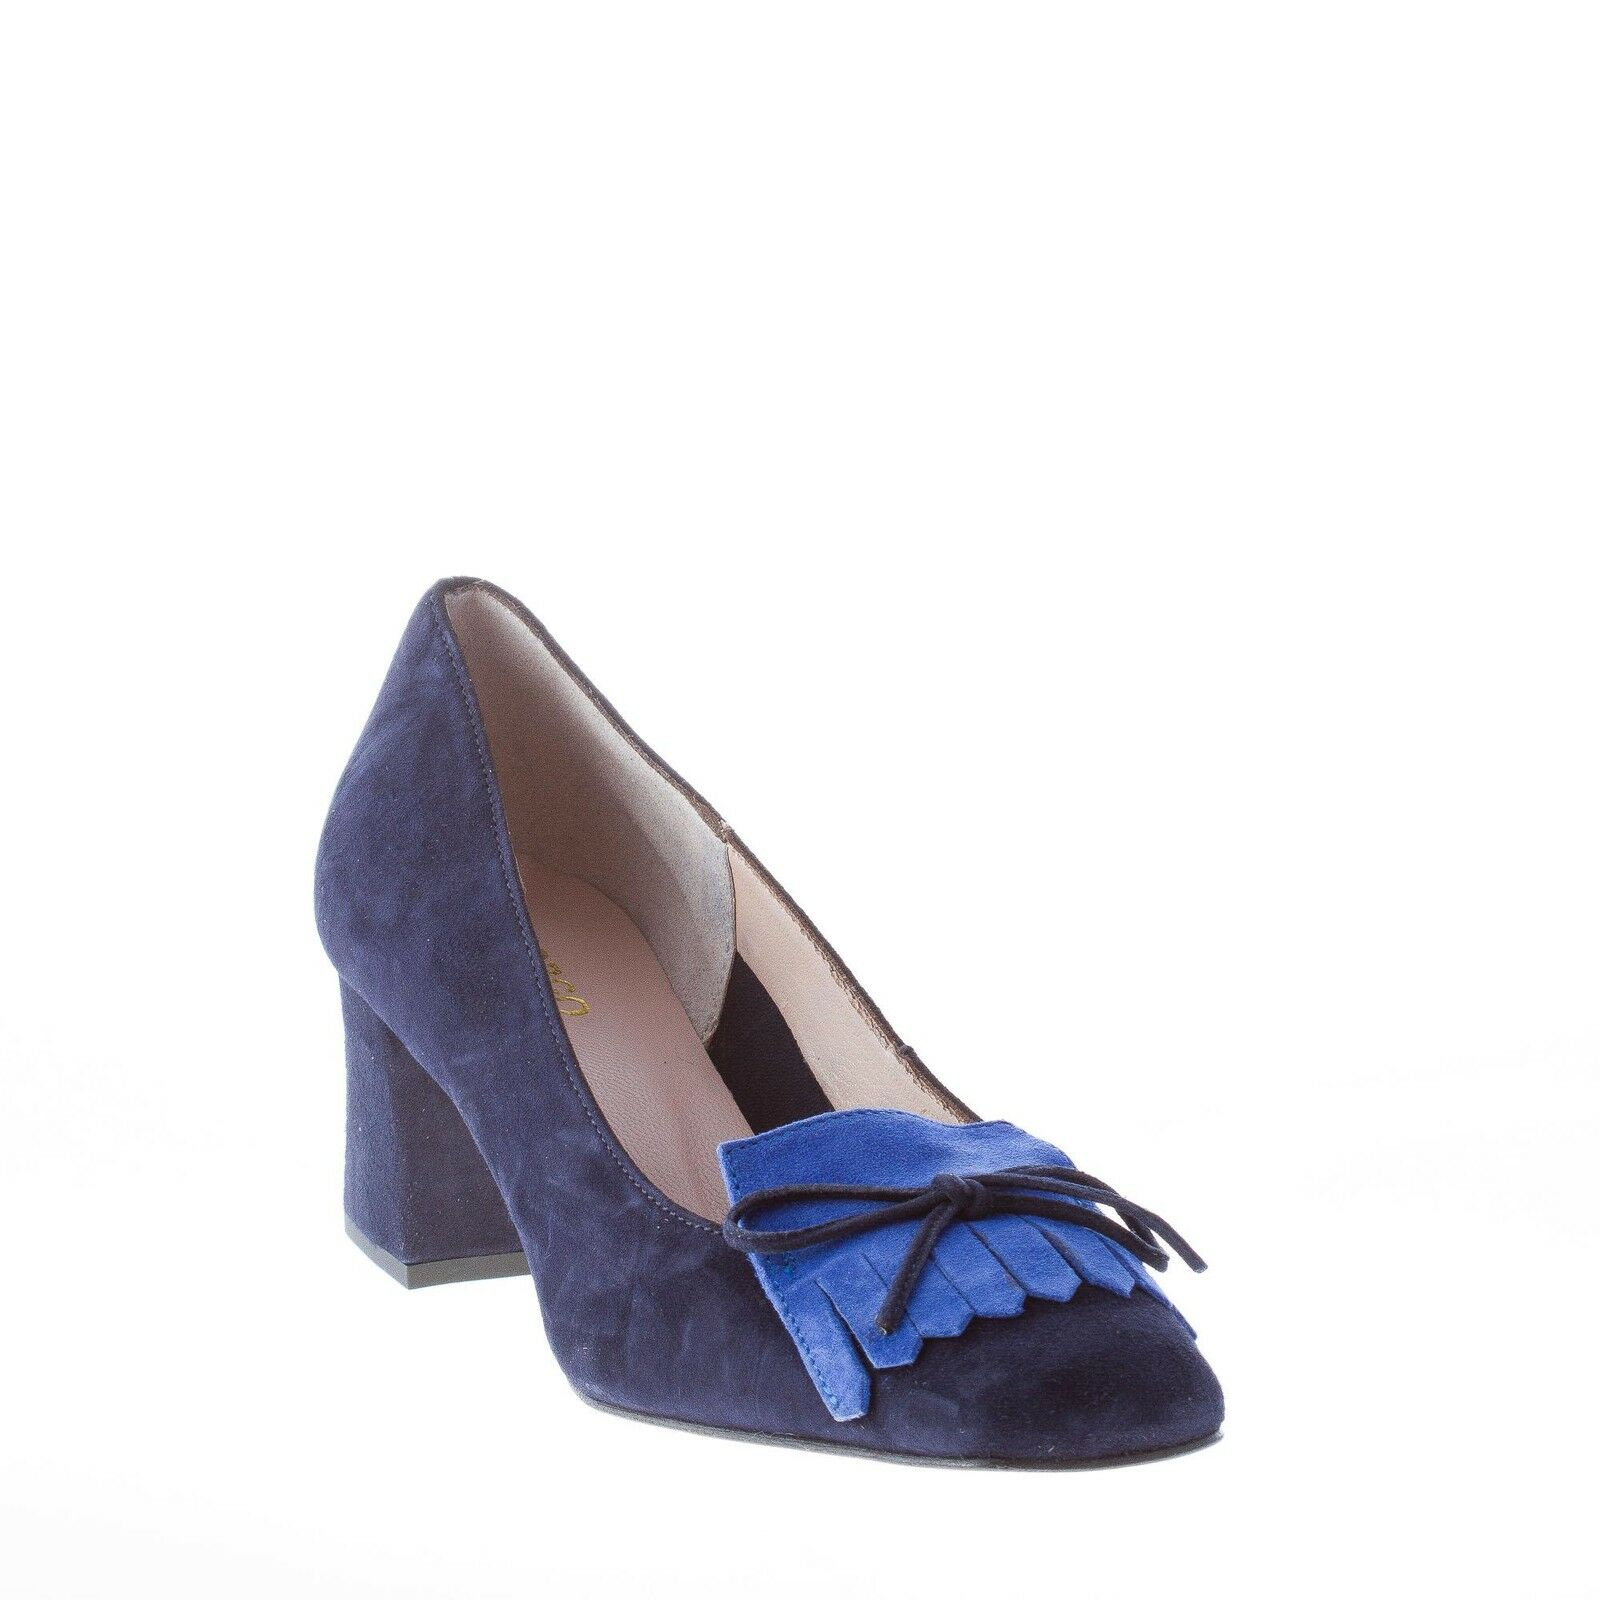 IL BORGO FIRENZE women shoes bluee suede pump bow tie and maxi fringe